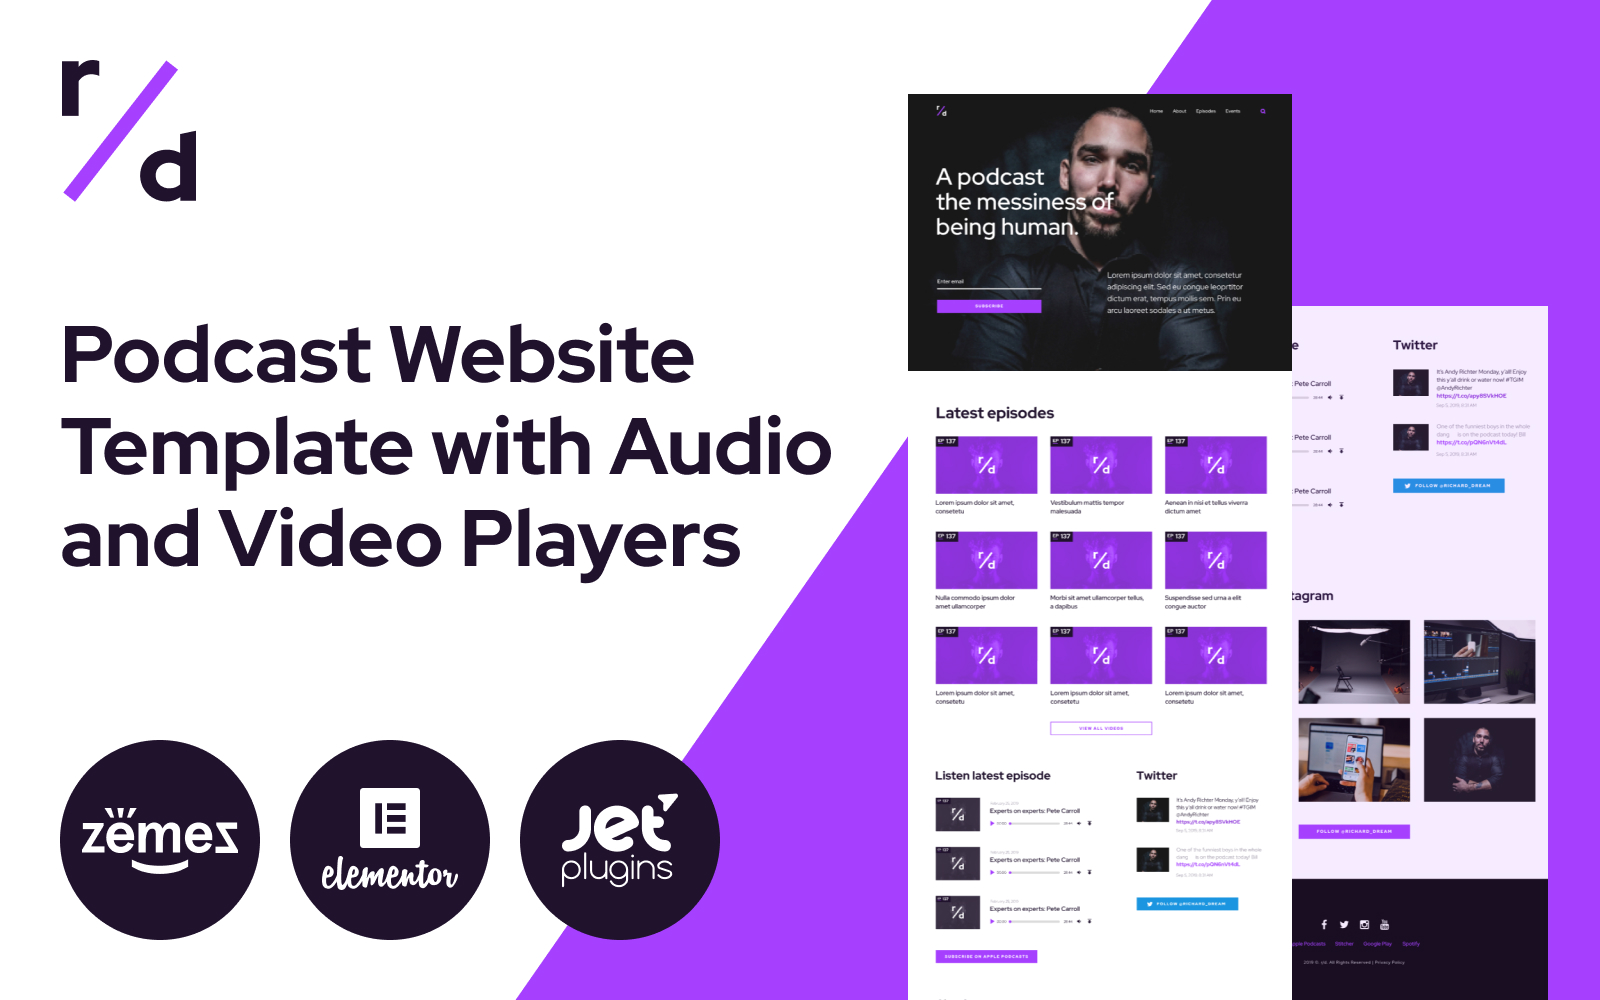 Responsive Richard Dream - Podcast Website Template with Audio and Video Players Wordpress #86500